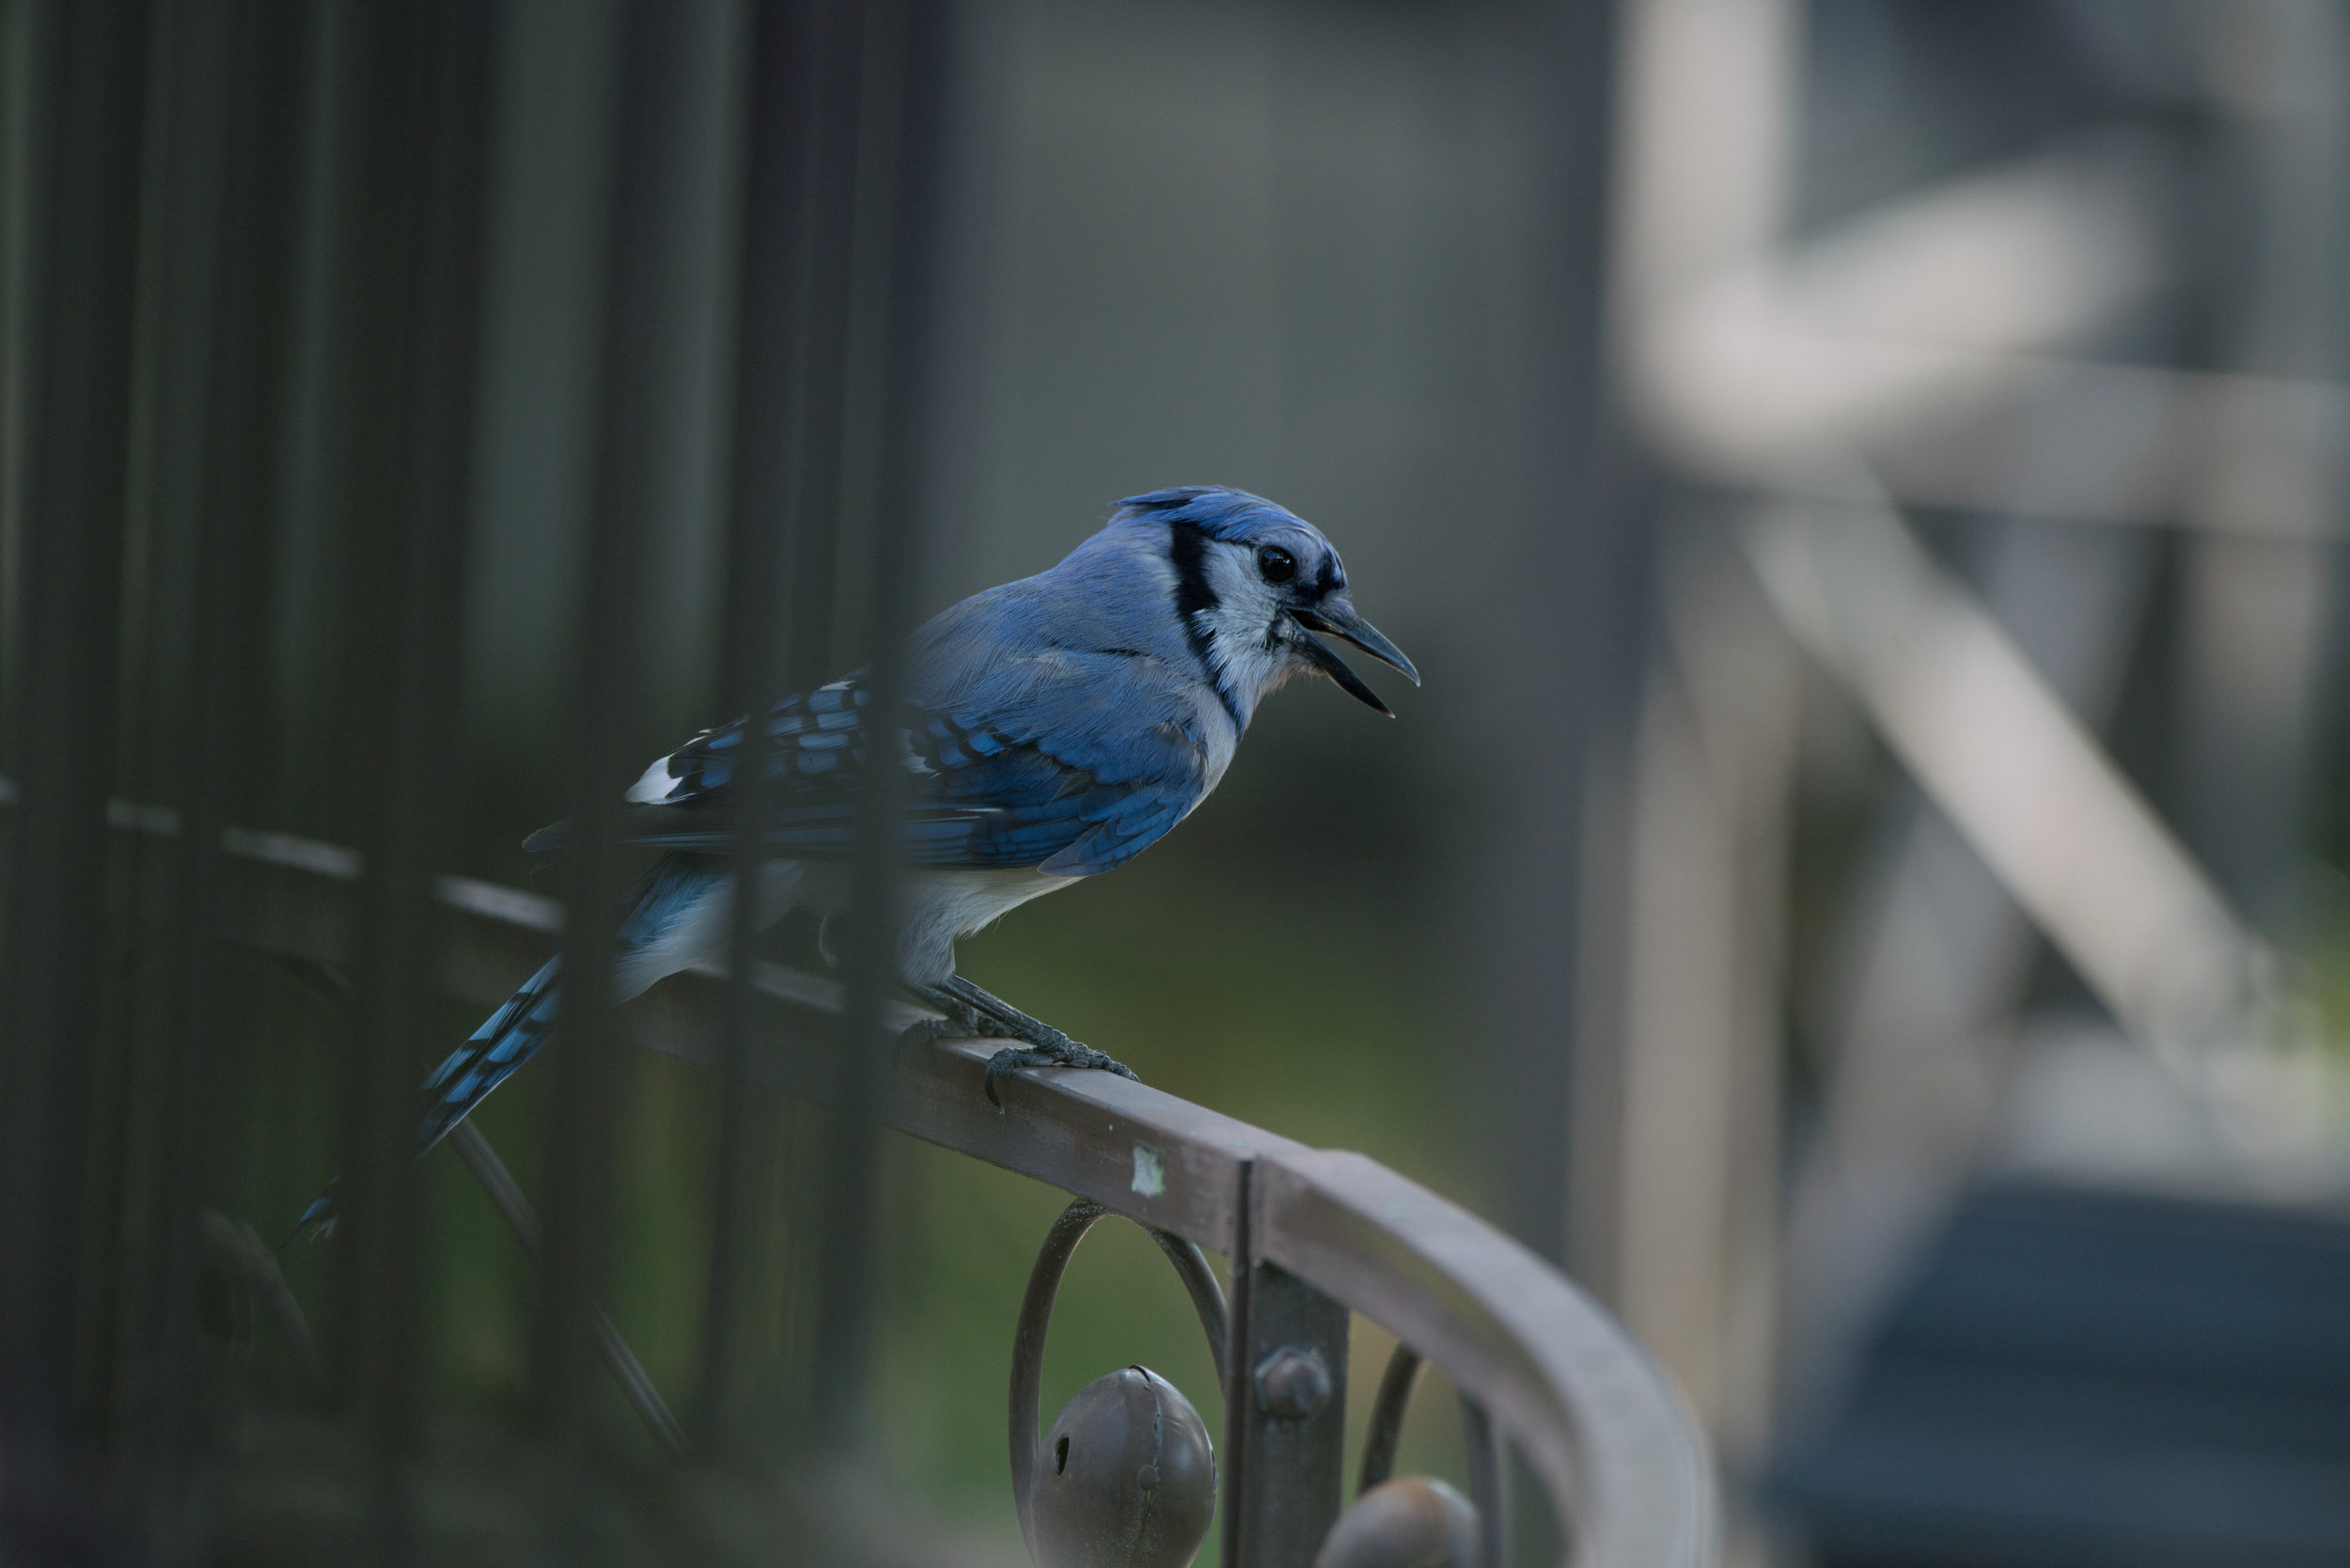 Perched Jay